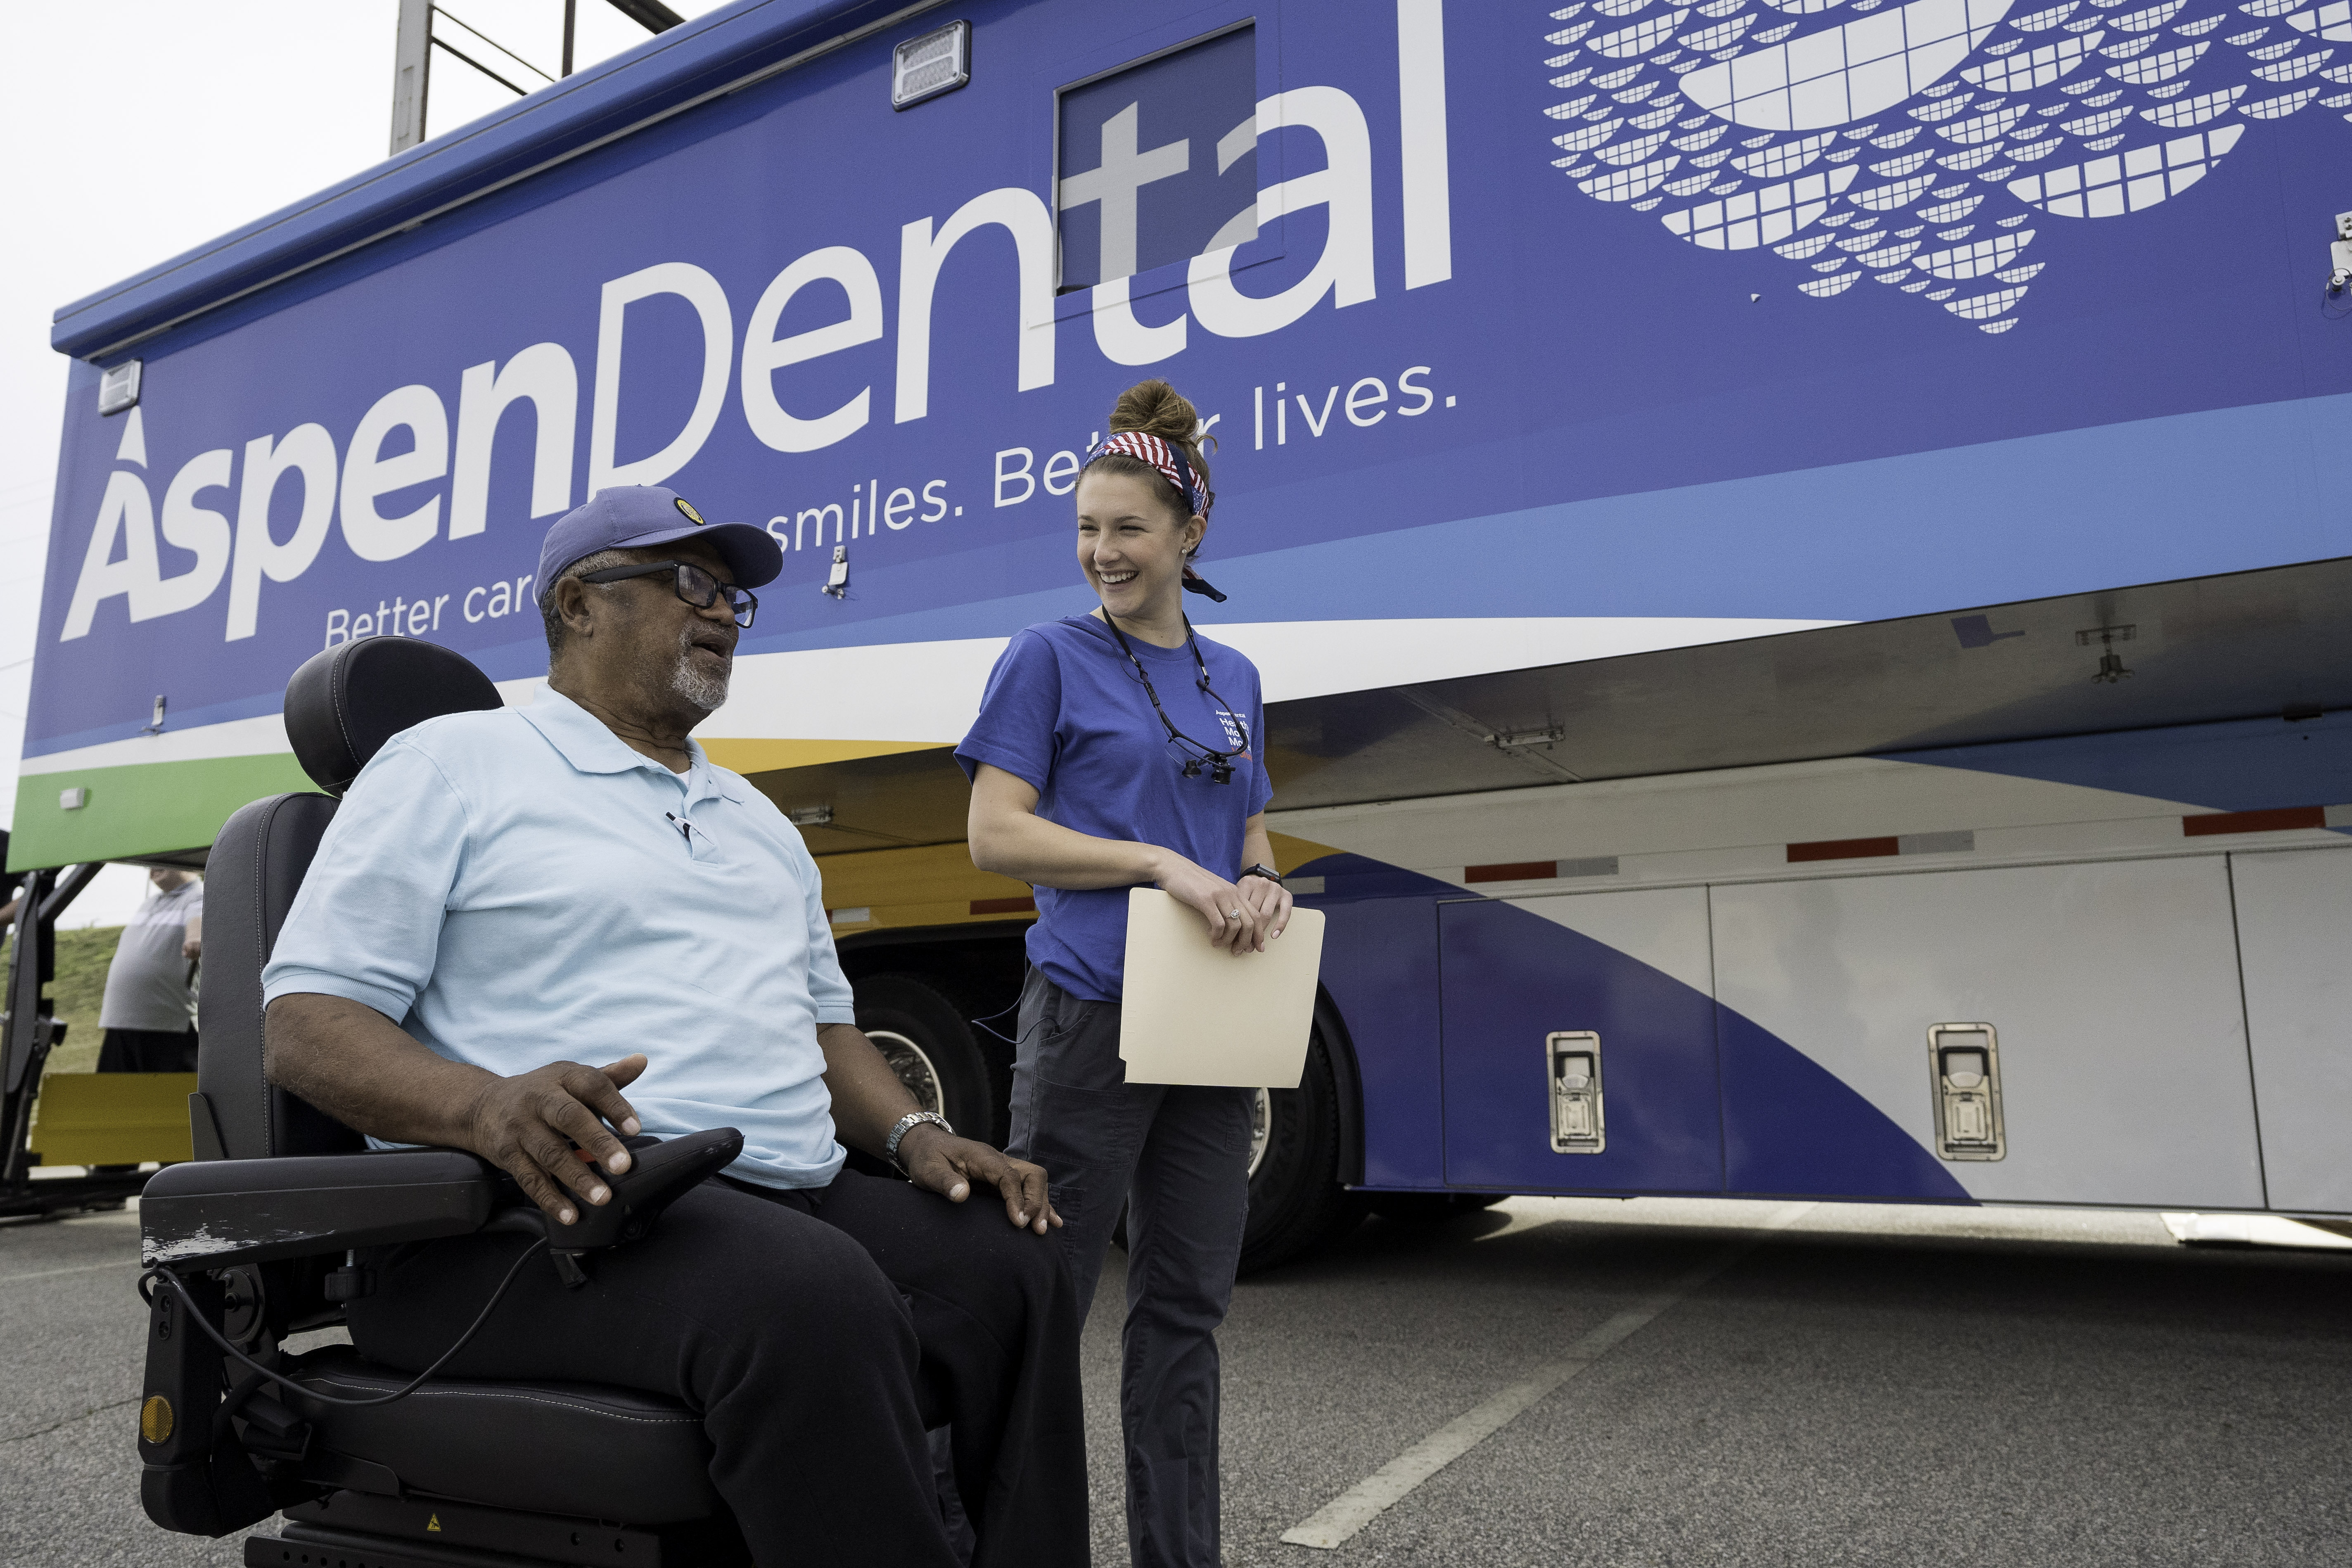 A man in a wheelchair next to a young female dental volunteer in front of the aspen dental mouth mobile bus